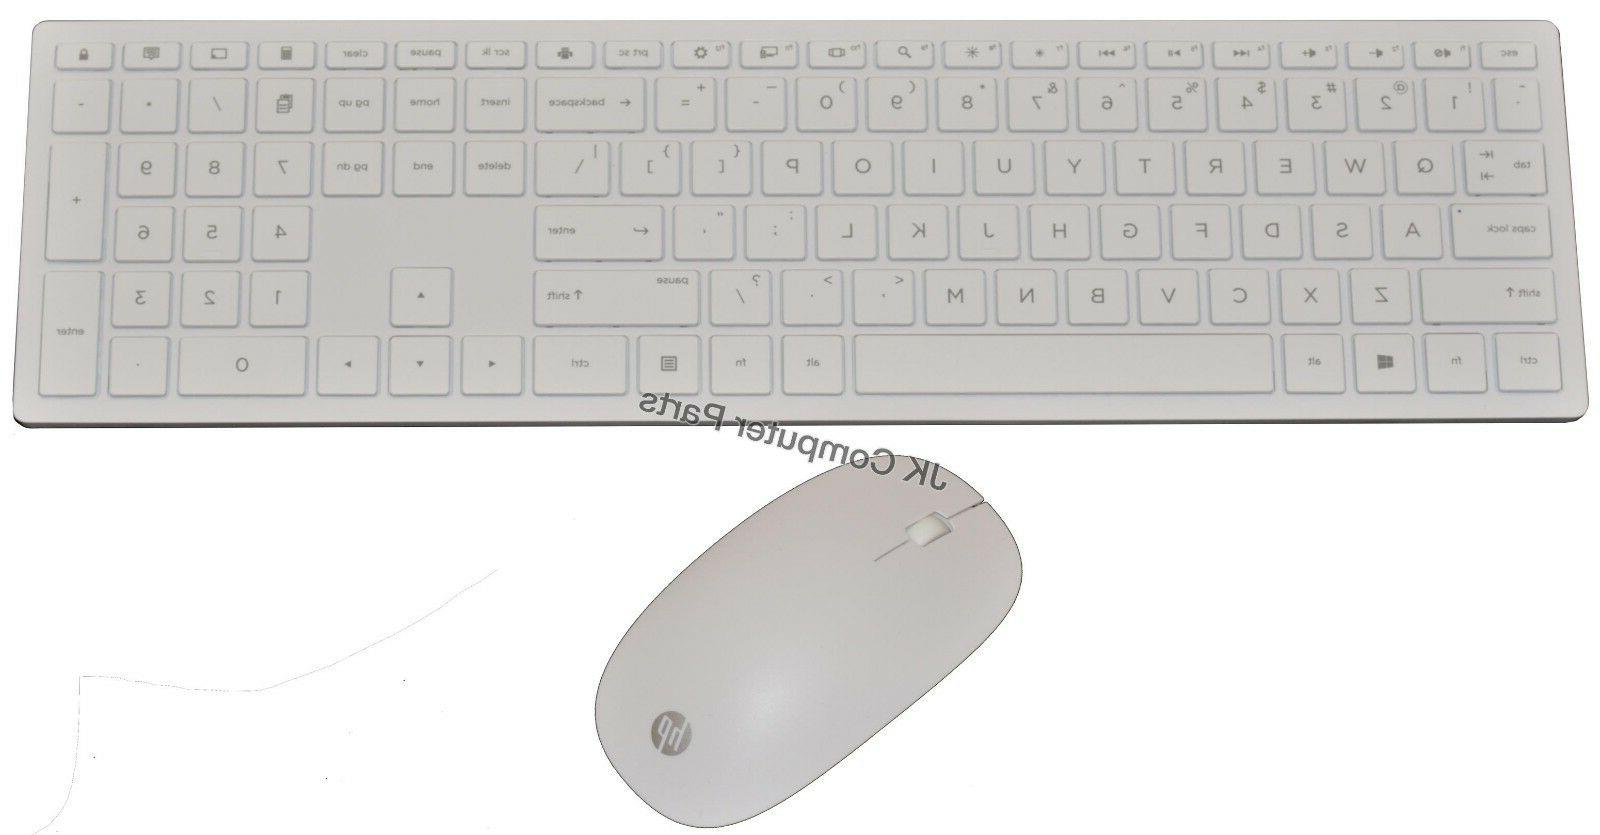 hp pavilion 24 r076l aio wireless keyboard and mouse. Black Bedroom Furniture Sets. Home Design Ideas